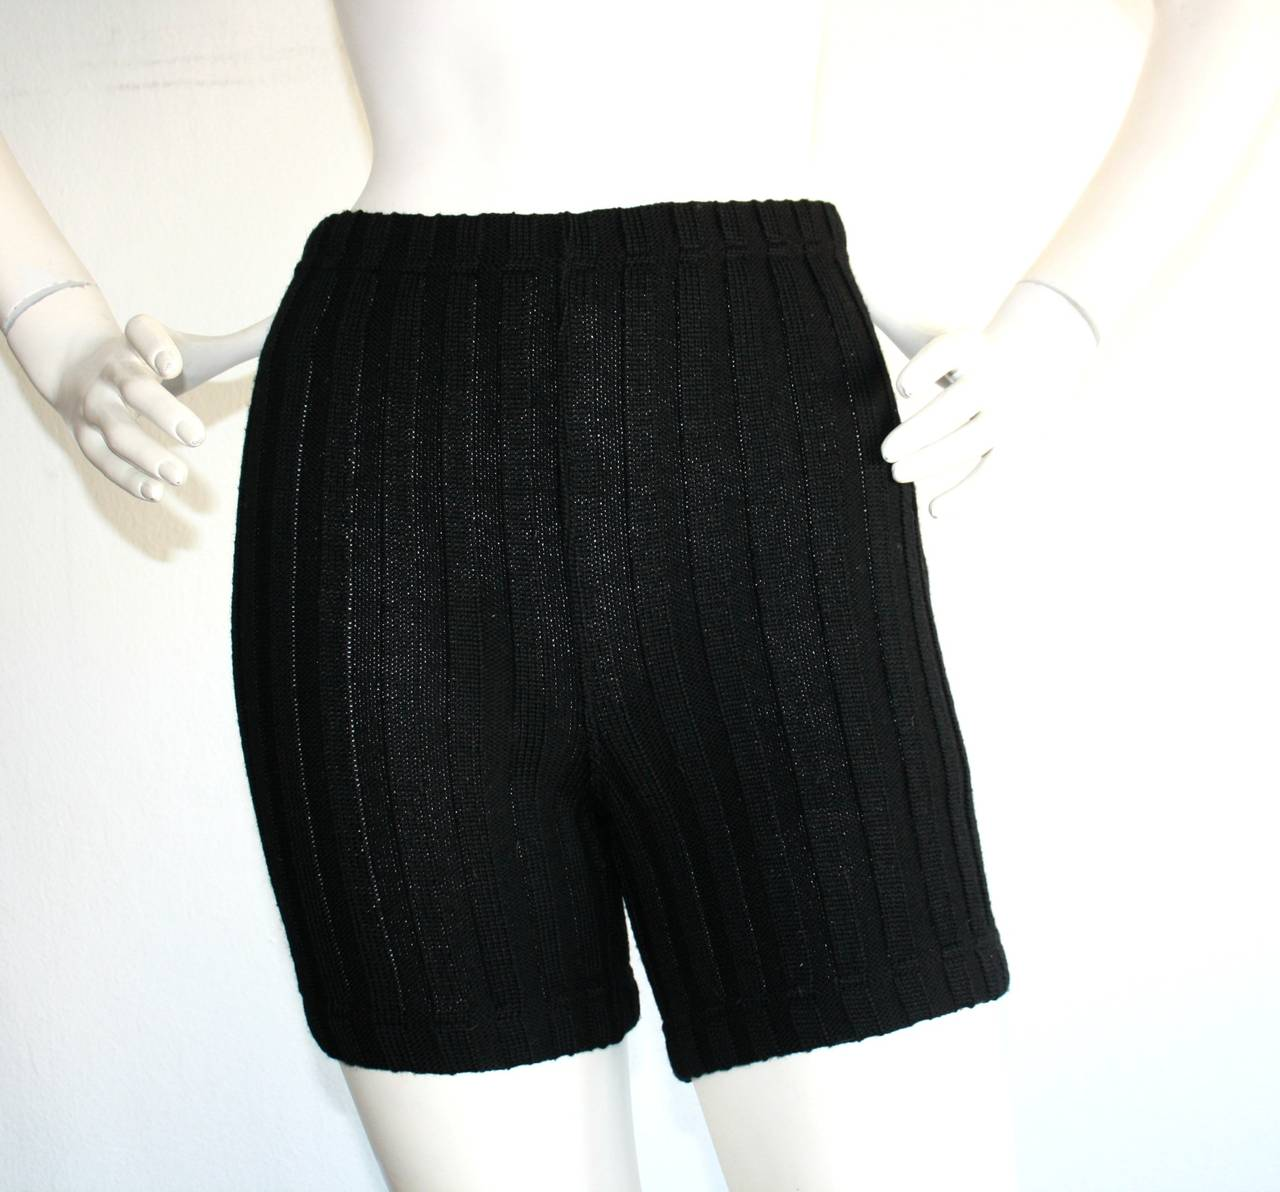 Iconic 1960s Rudi Gernreich For Harmon Knits Shorts and Top Ensemble 3